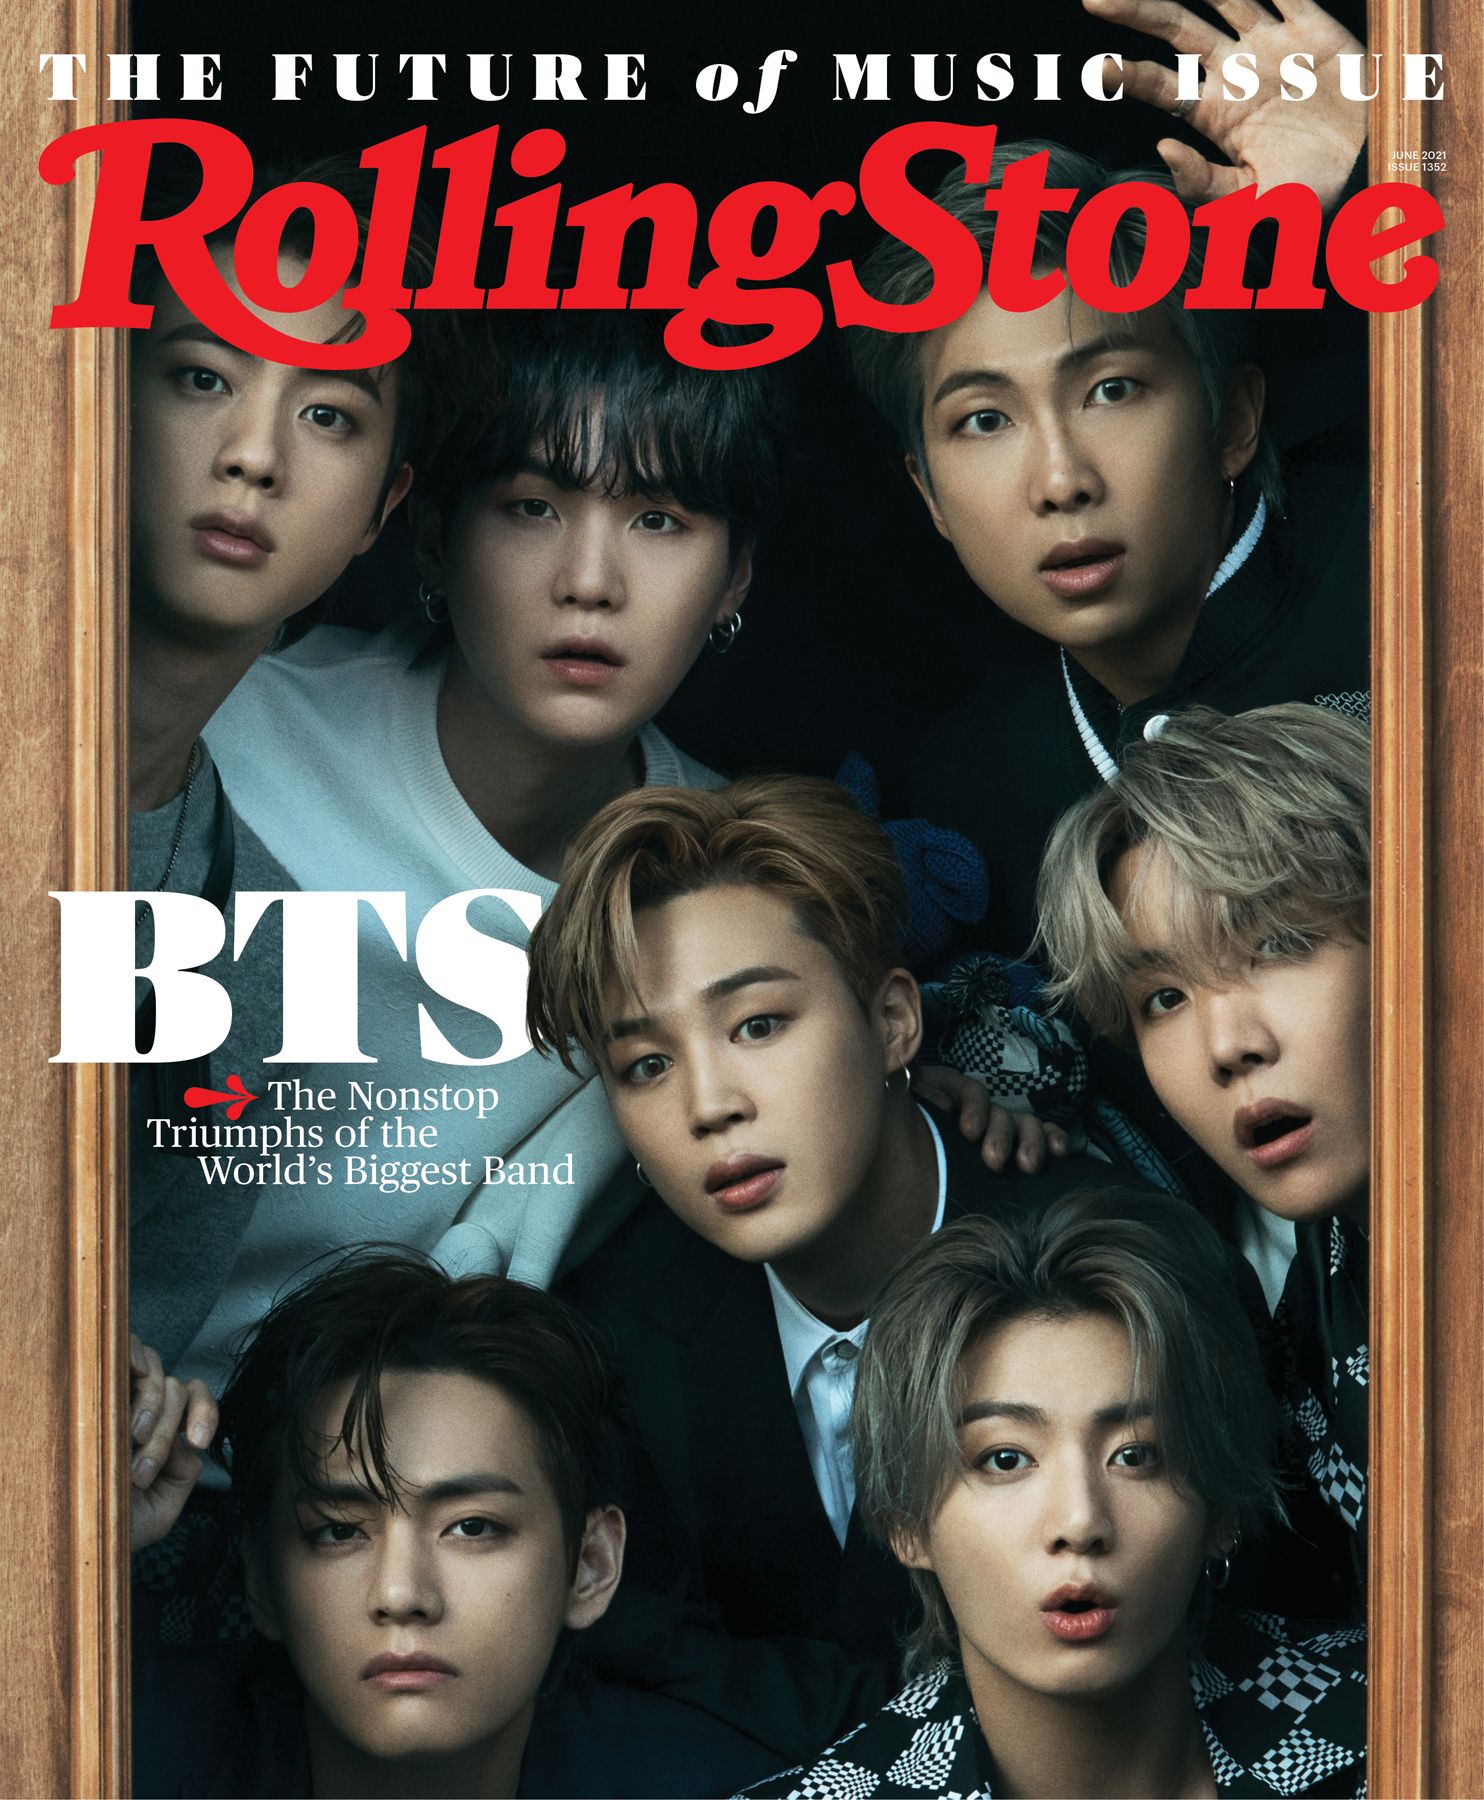 BTS Rolling Stone Cover: Photos, Interview Details